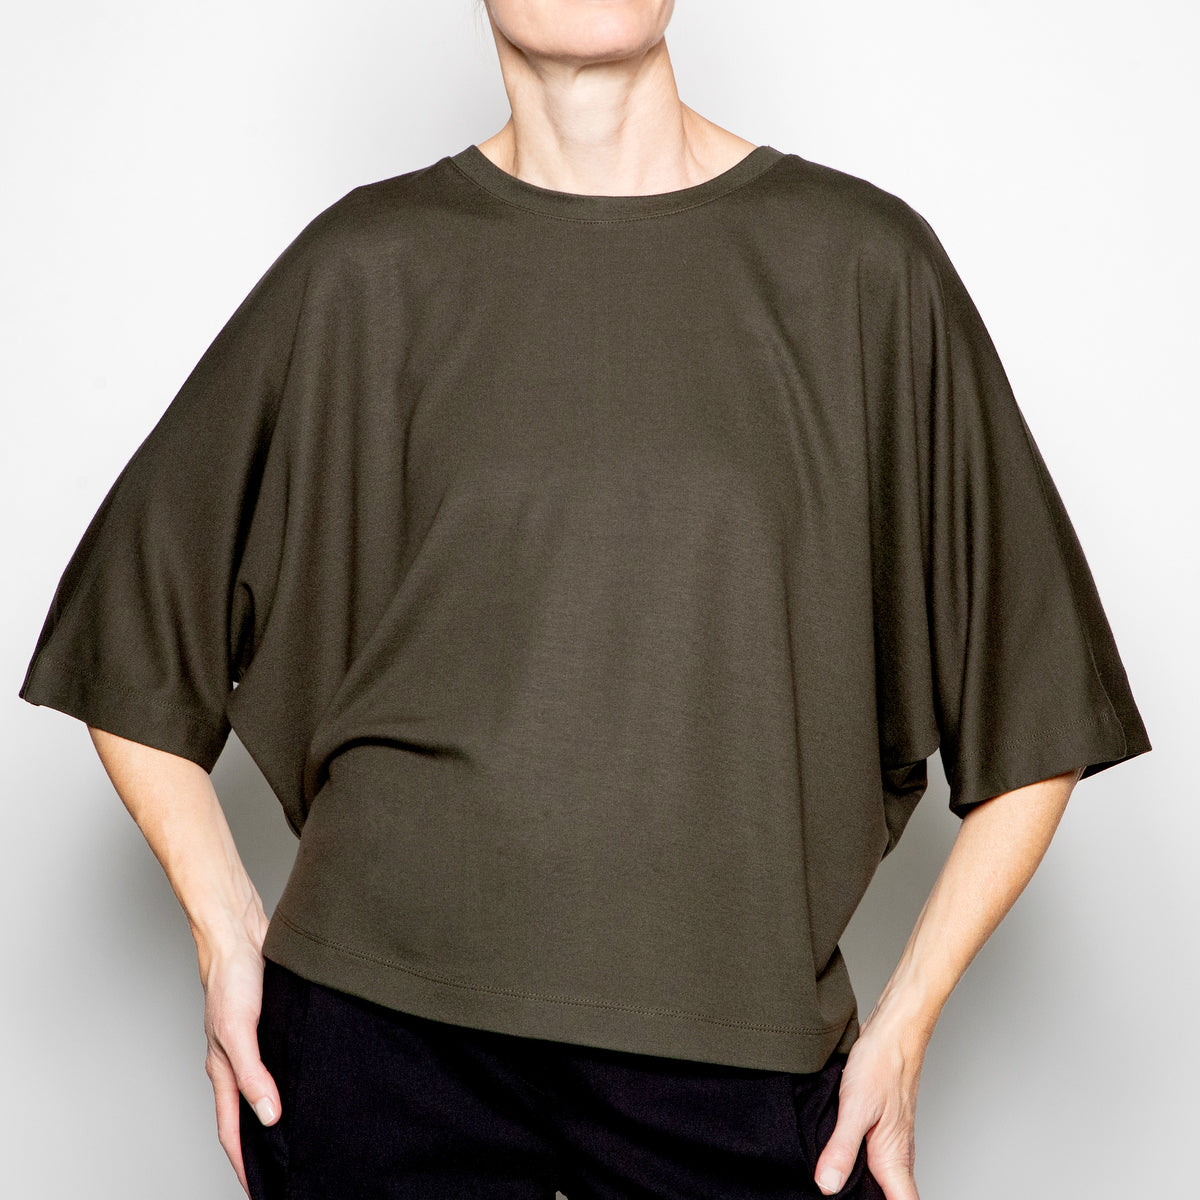 Ever Sassy Jersey Top in Forest